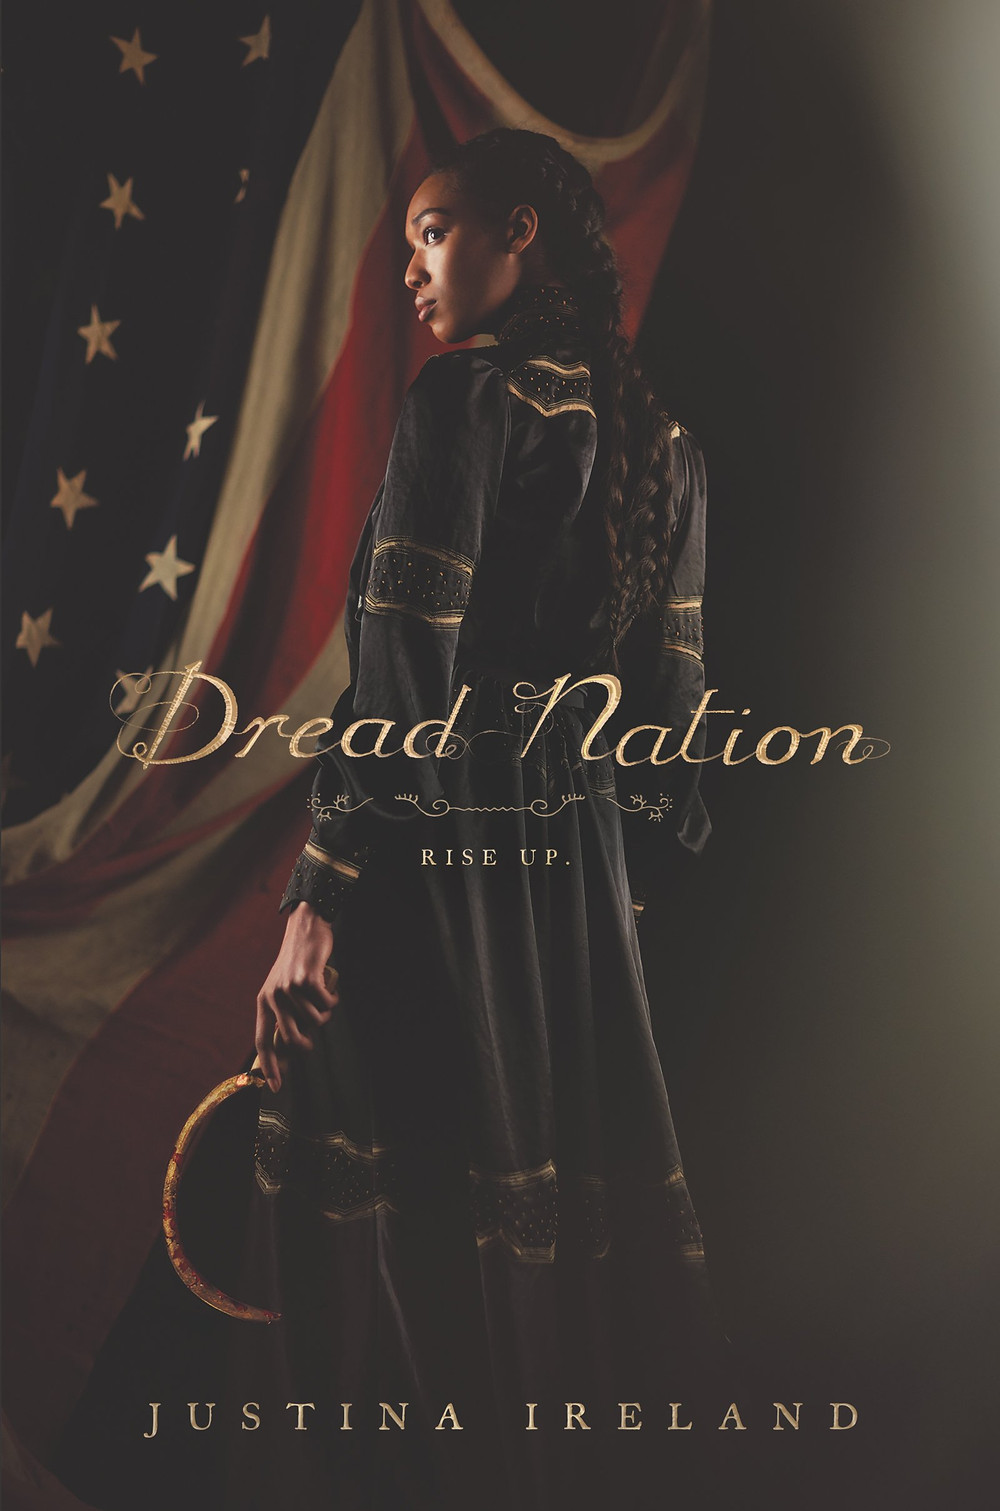 Book cover of Dread Nation by Justina Ireland.